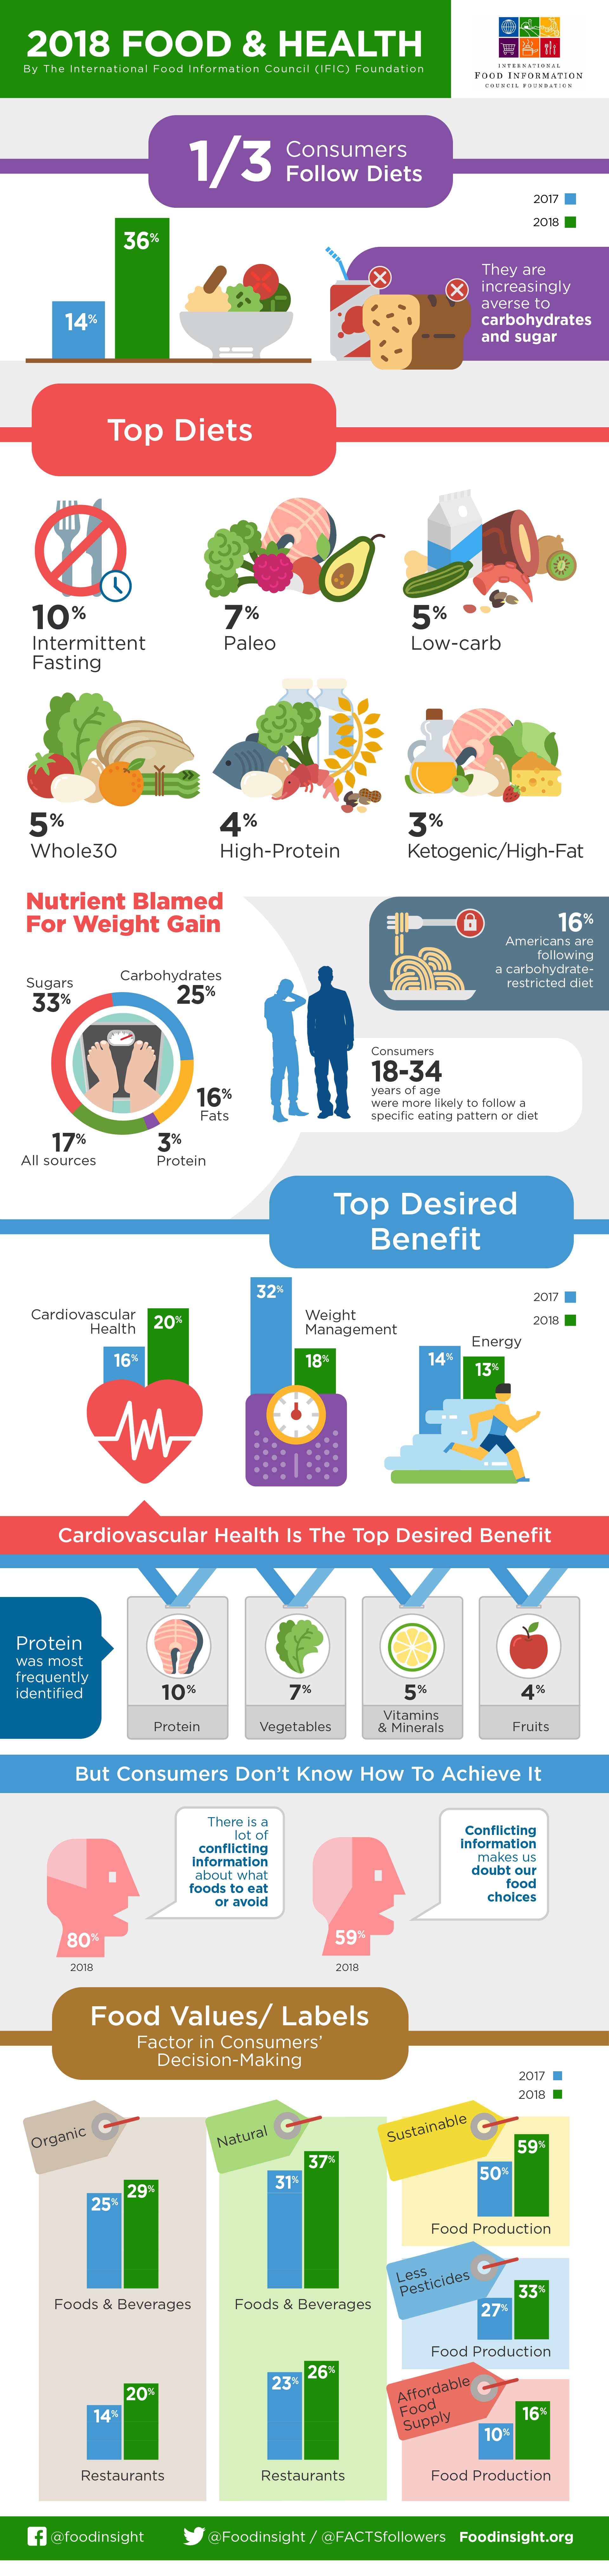 IFIC health survey infographic